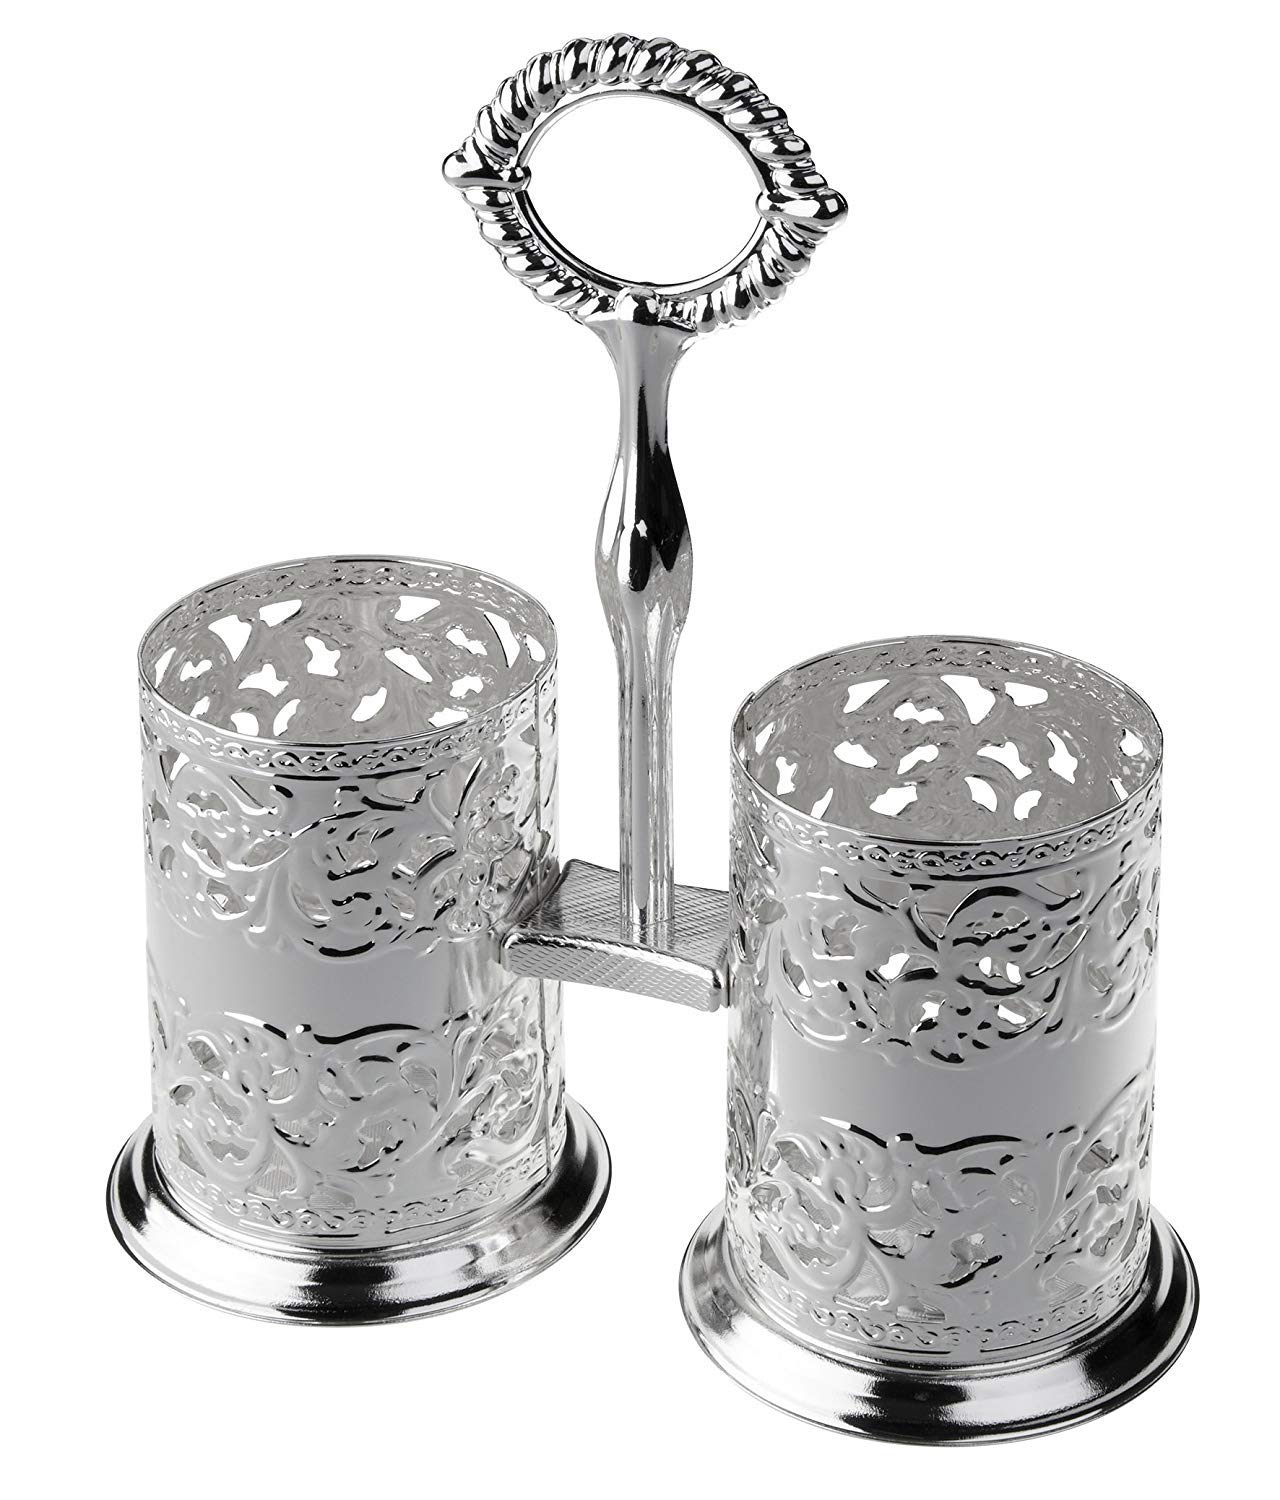 Cutlery Holder - Silver Plated 5966